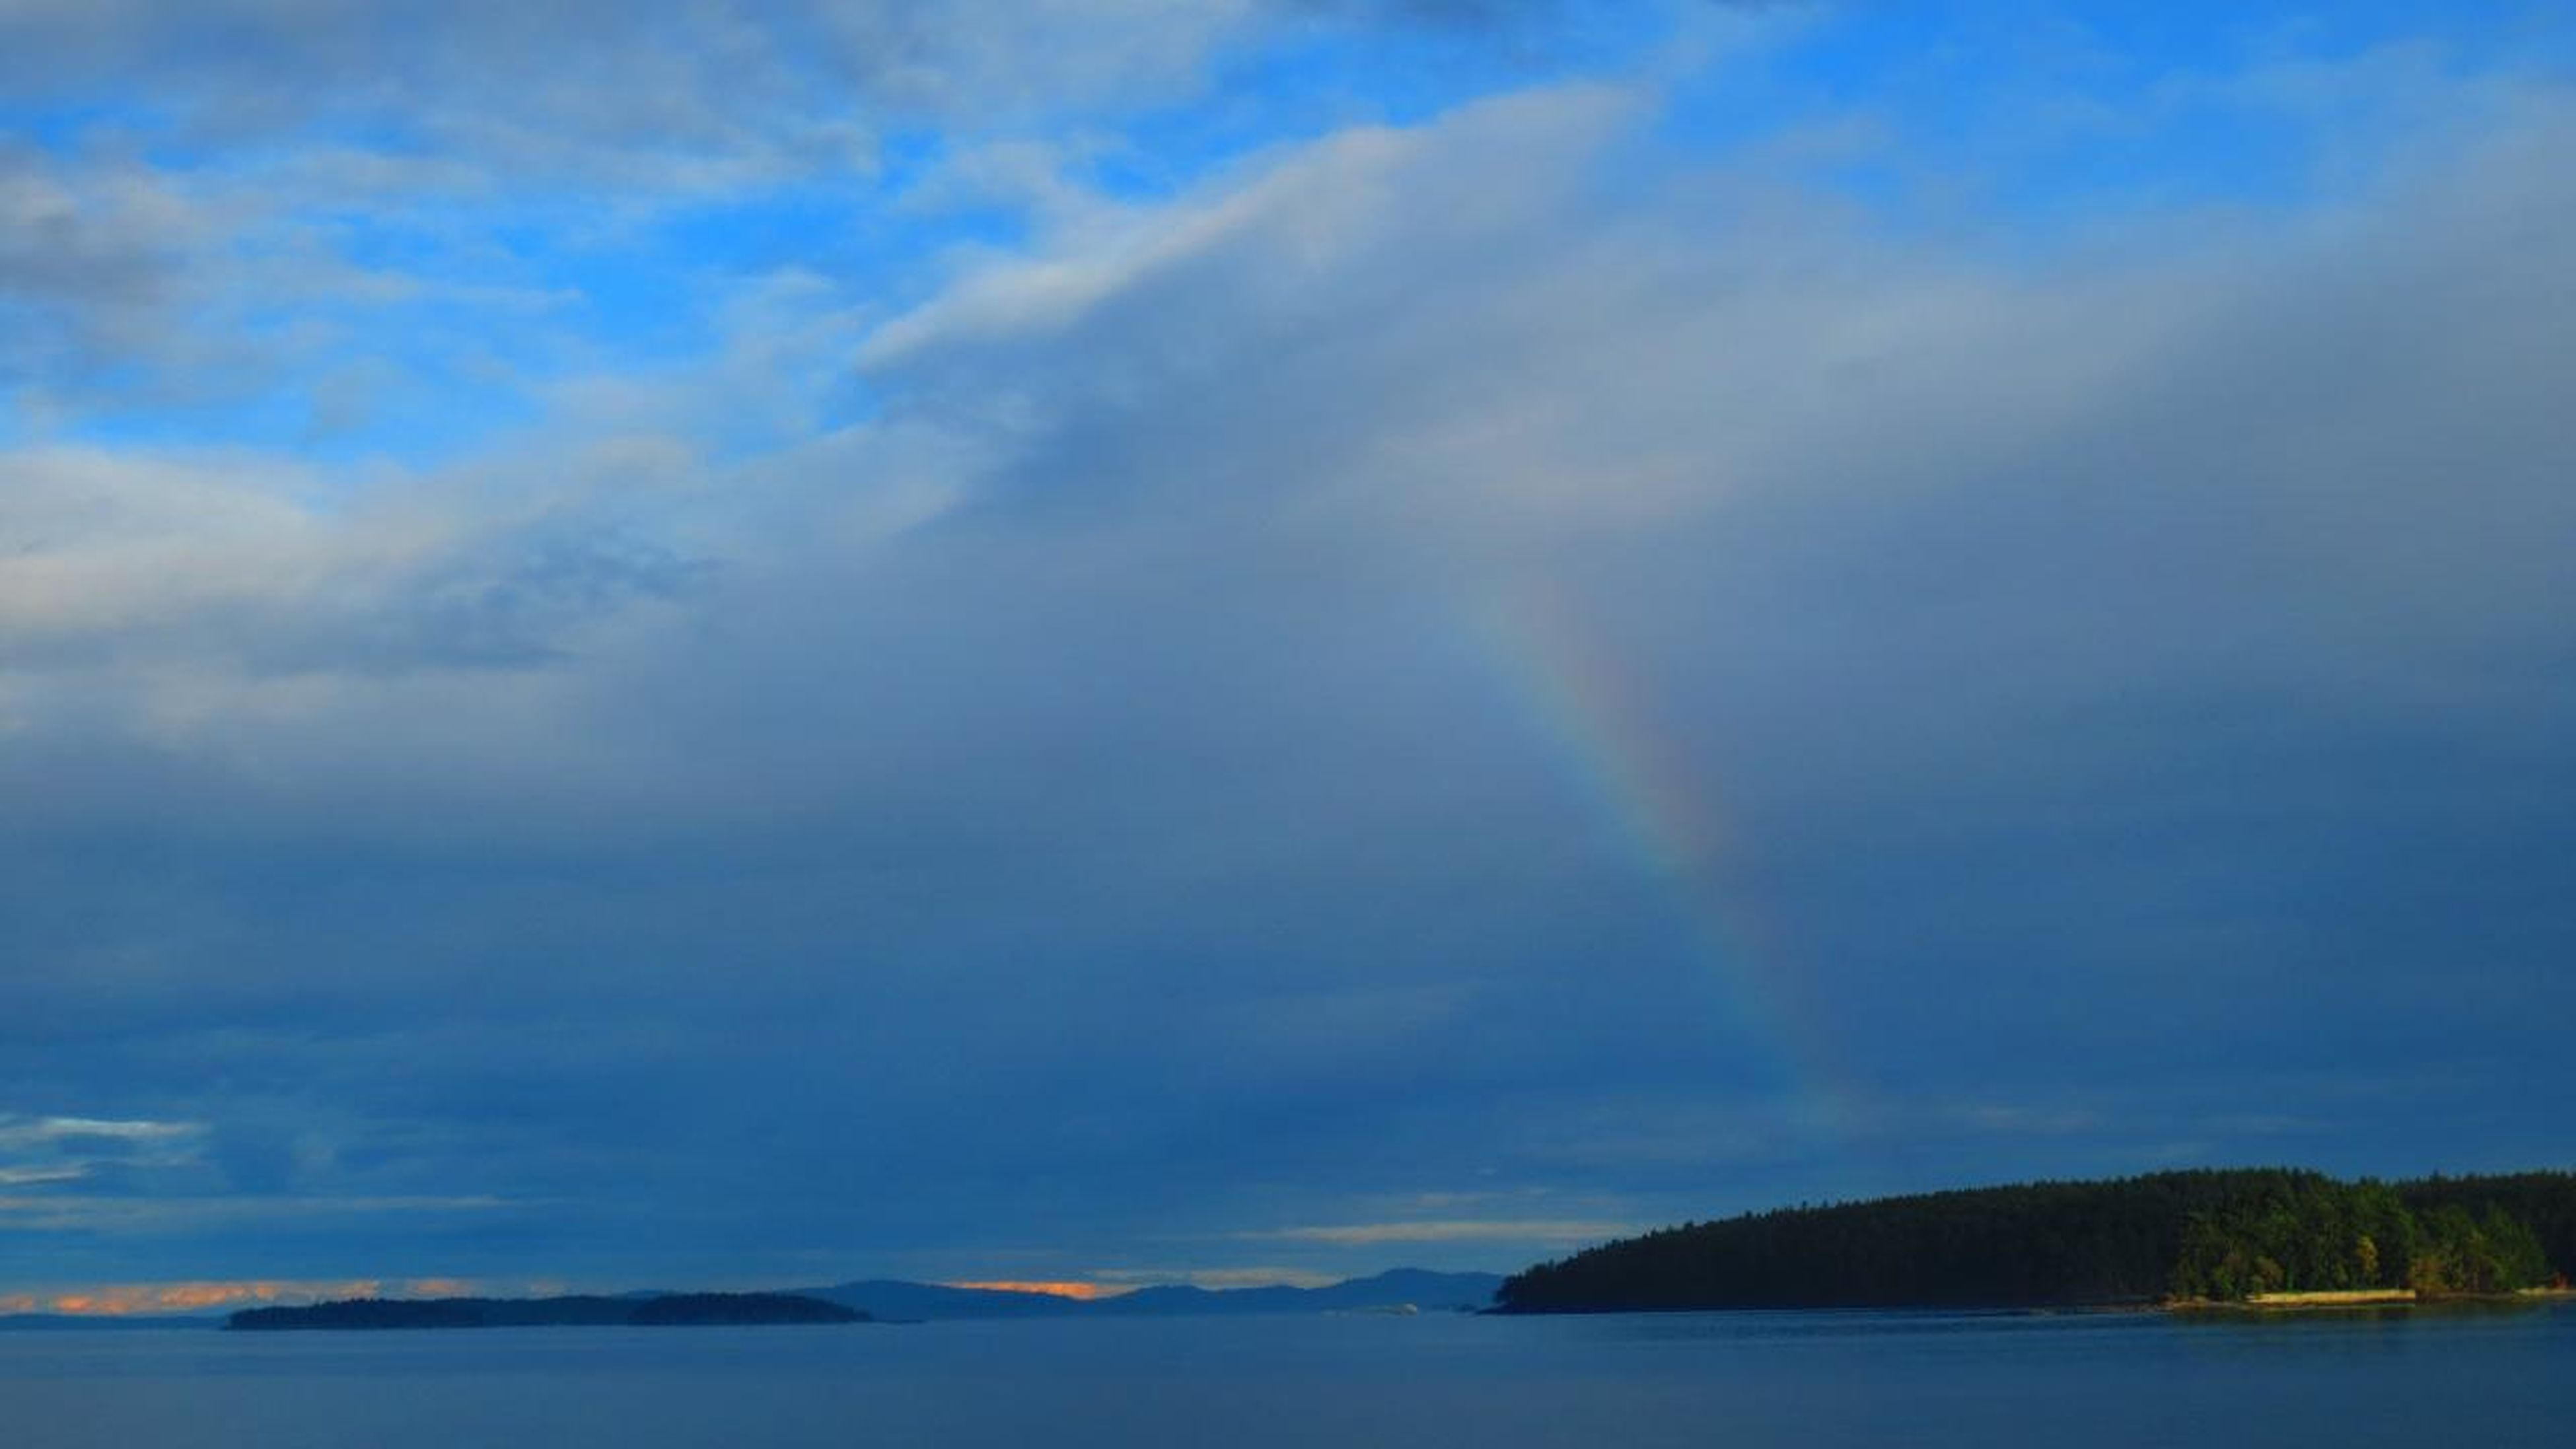 went to Pender Island:) This is the picture when I was taking ferries n after the rain<3 There is really full of nature, I love everything in there... I'll definitely go there again!! 知り合いとペンダーアイランドていう小さな島に行って来ましたー!!フェリーに乗ってる時に虹を発見!ペンダーアイランドは自然に囲まれてて、全てが最 Rainbow EyeEm Nature Lover EyeEm Best Shots I Look To The Sky